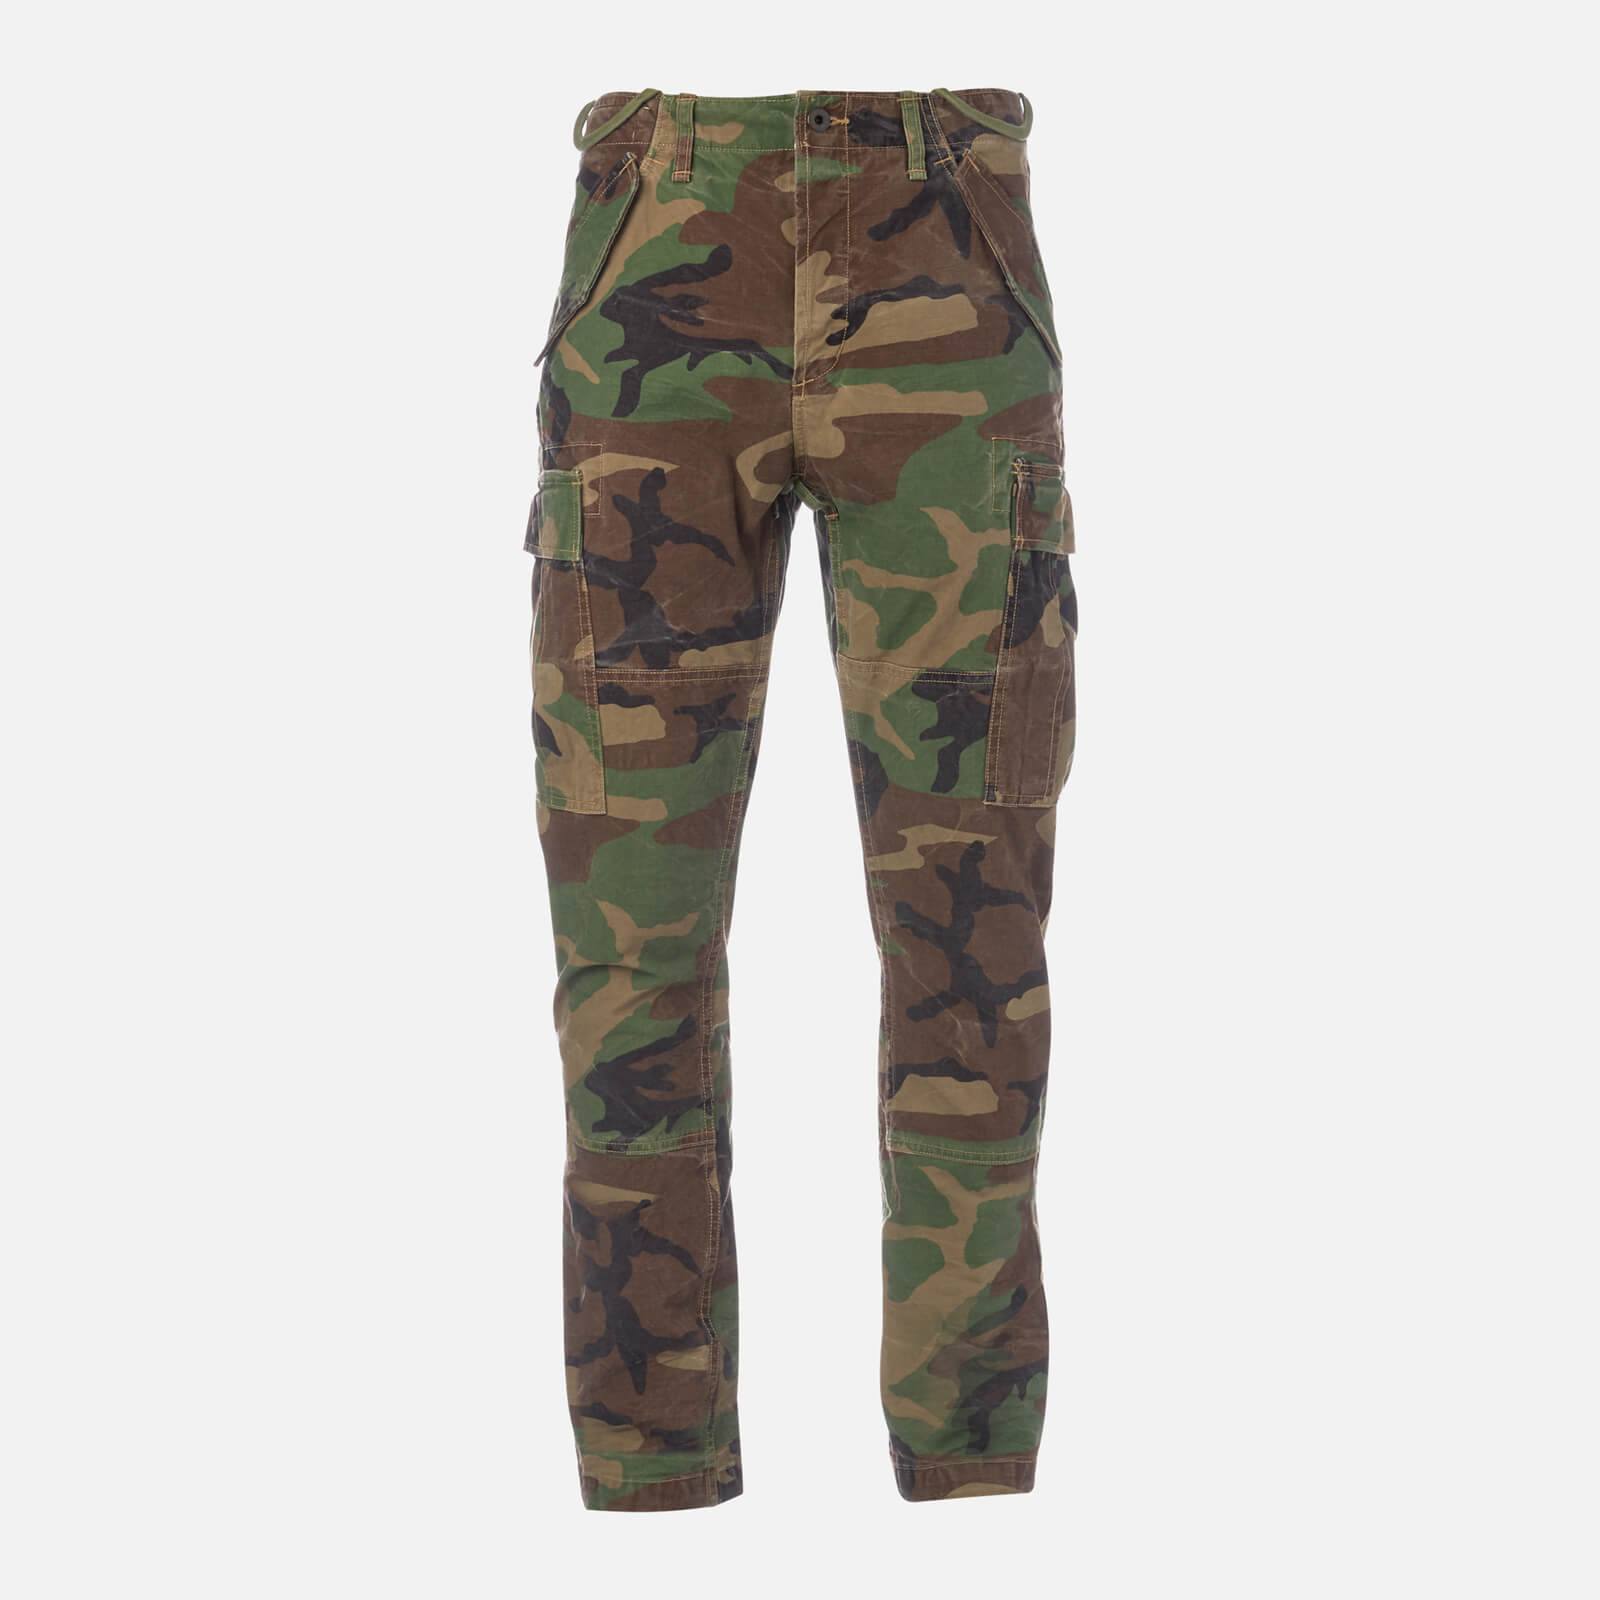 6f4ed558f3 Polo Ralph Lauren Men's Slim Fit Modern M43 Cargo Pants - Surplus Camo -  Free UK Delivery over £50